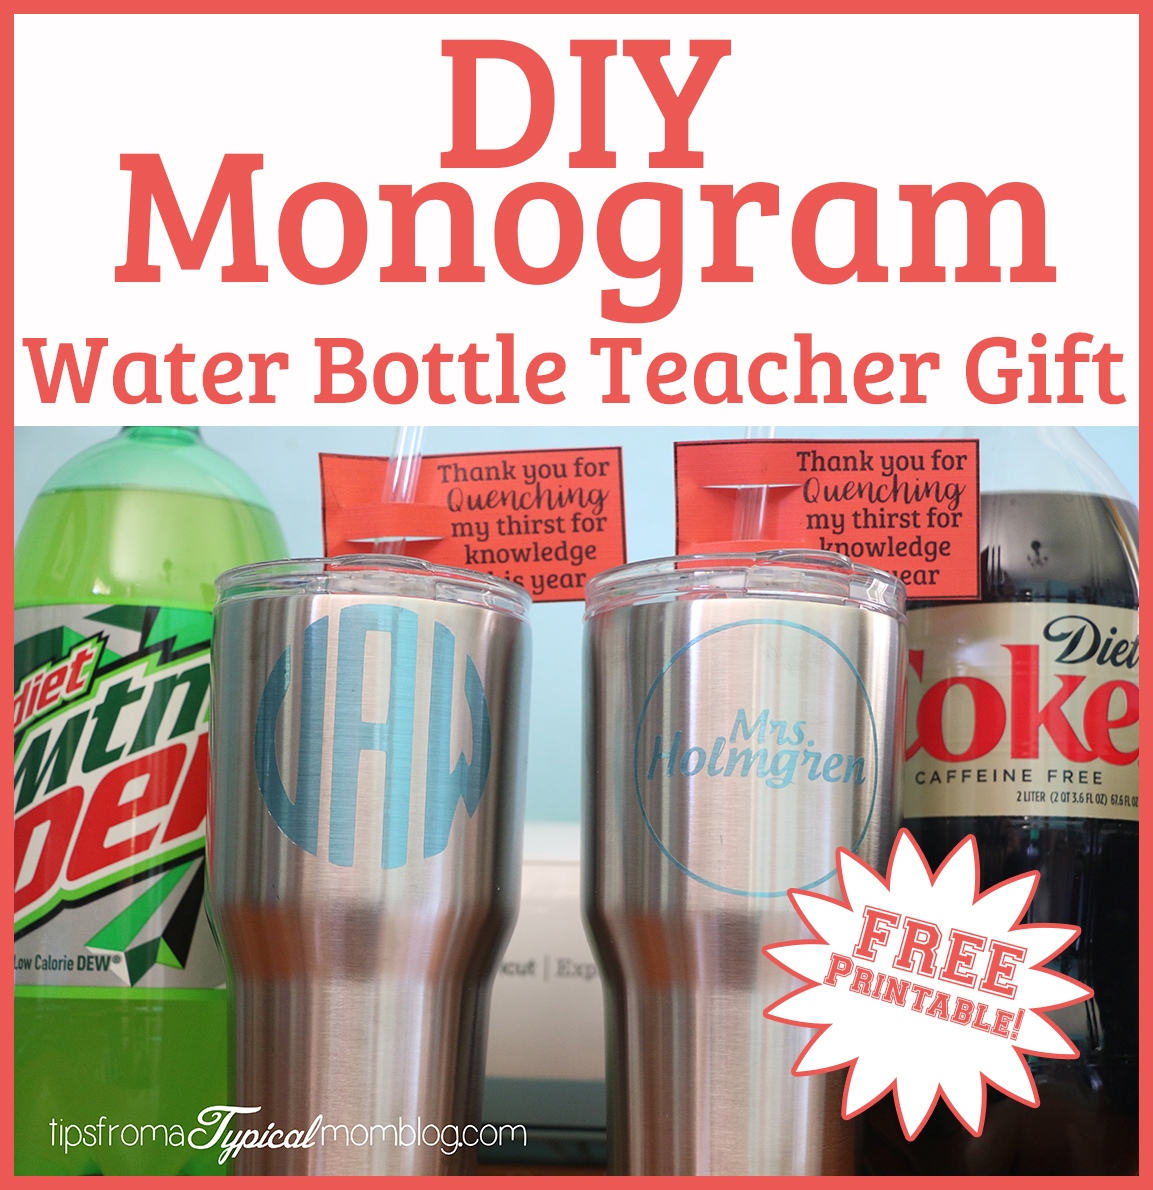 Rooster Wm additionally Shark Sensory Jar X likewise Practicallifecopy Thumb likewise Balletwm also Diy Monogram Water Bottle Teacher Gift Idea. on all about me back to school printables